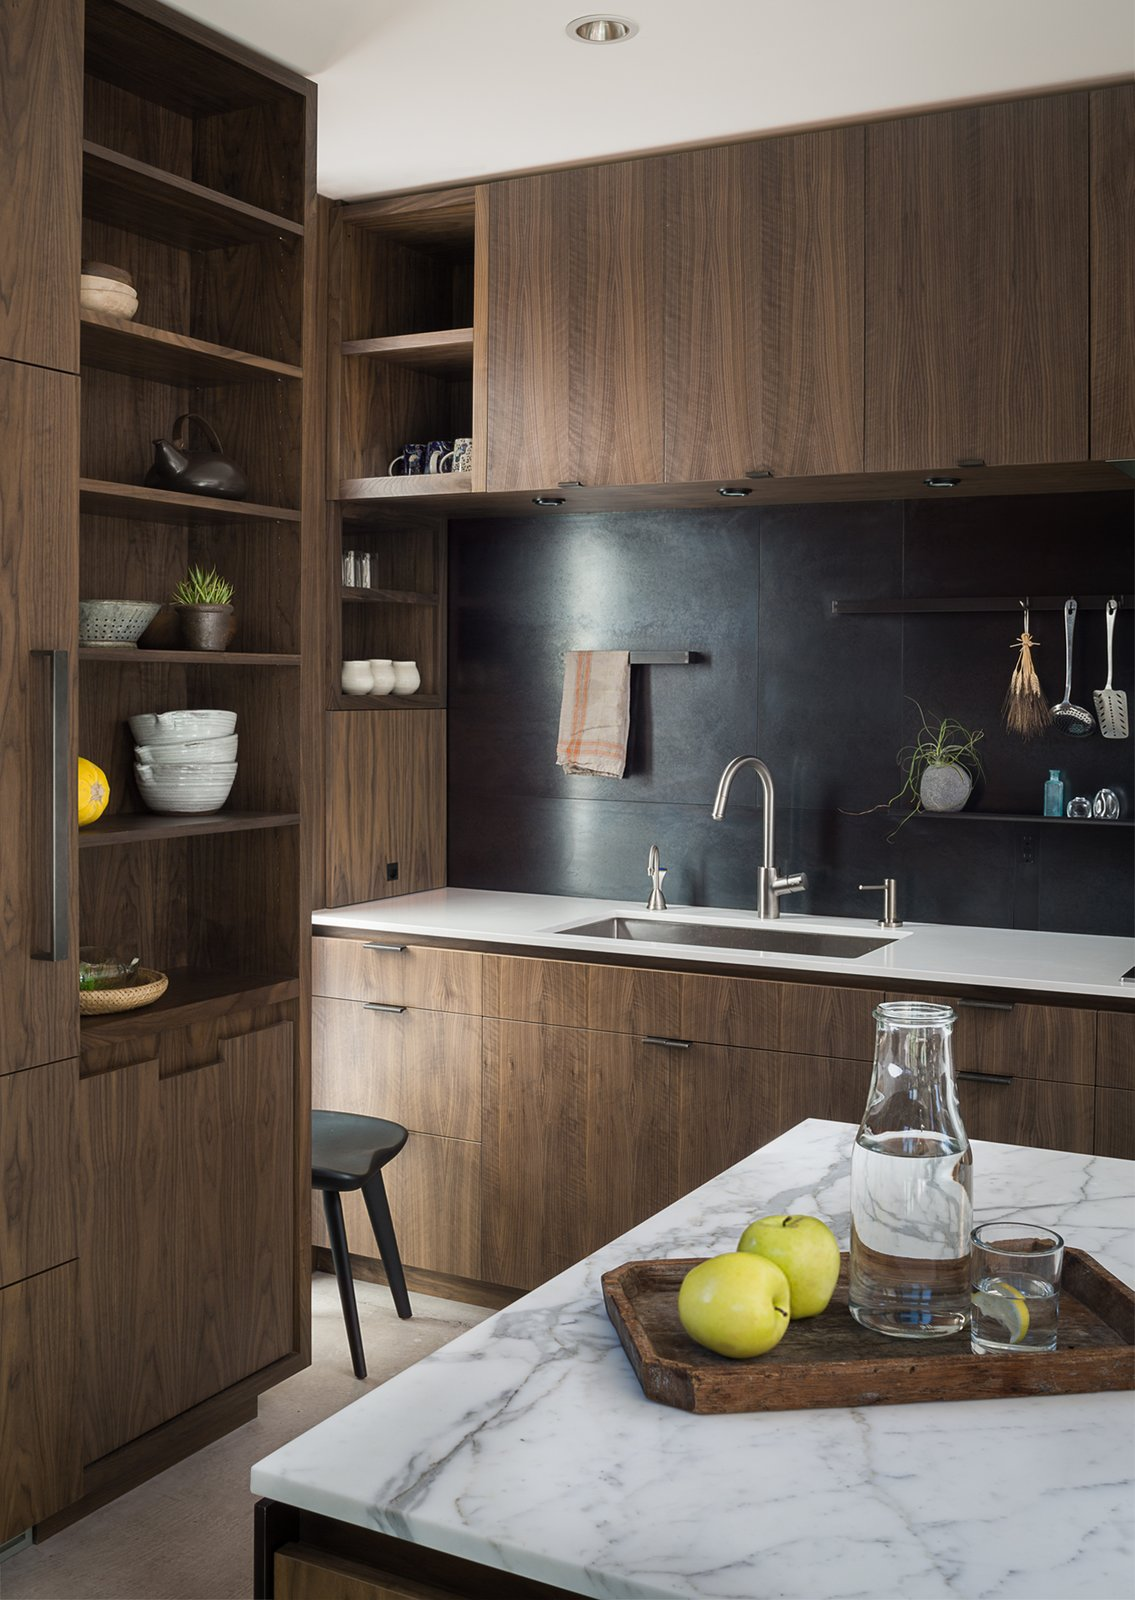 Kitchen, Wood Cabinet, and Marble Counter Helen Street by mw|works  Helen Street by mwworks